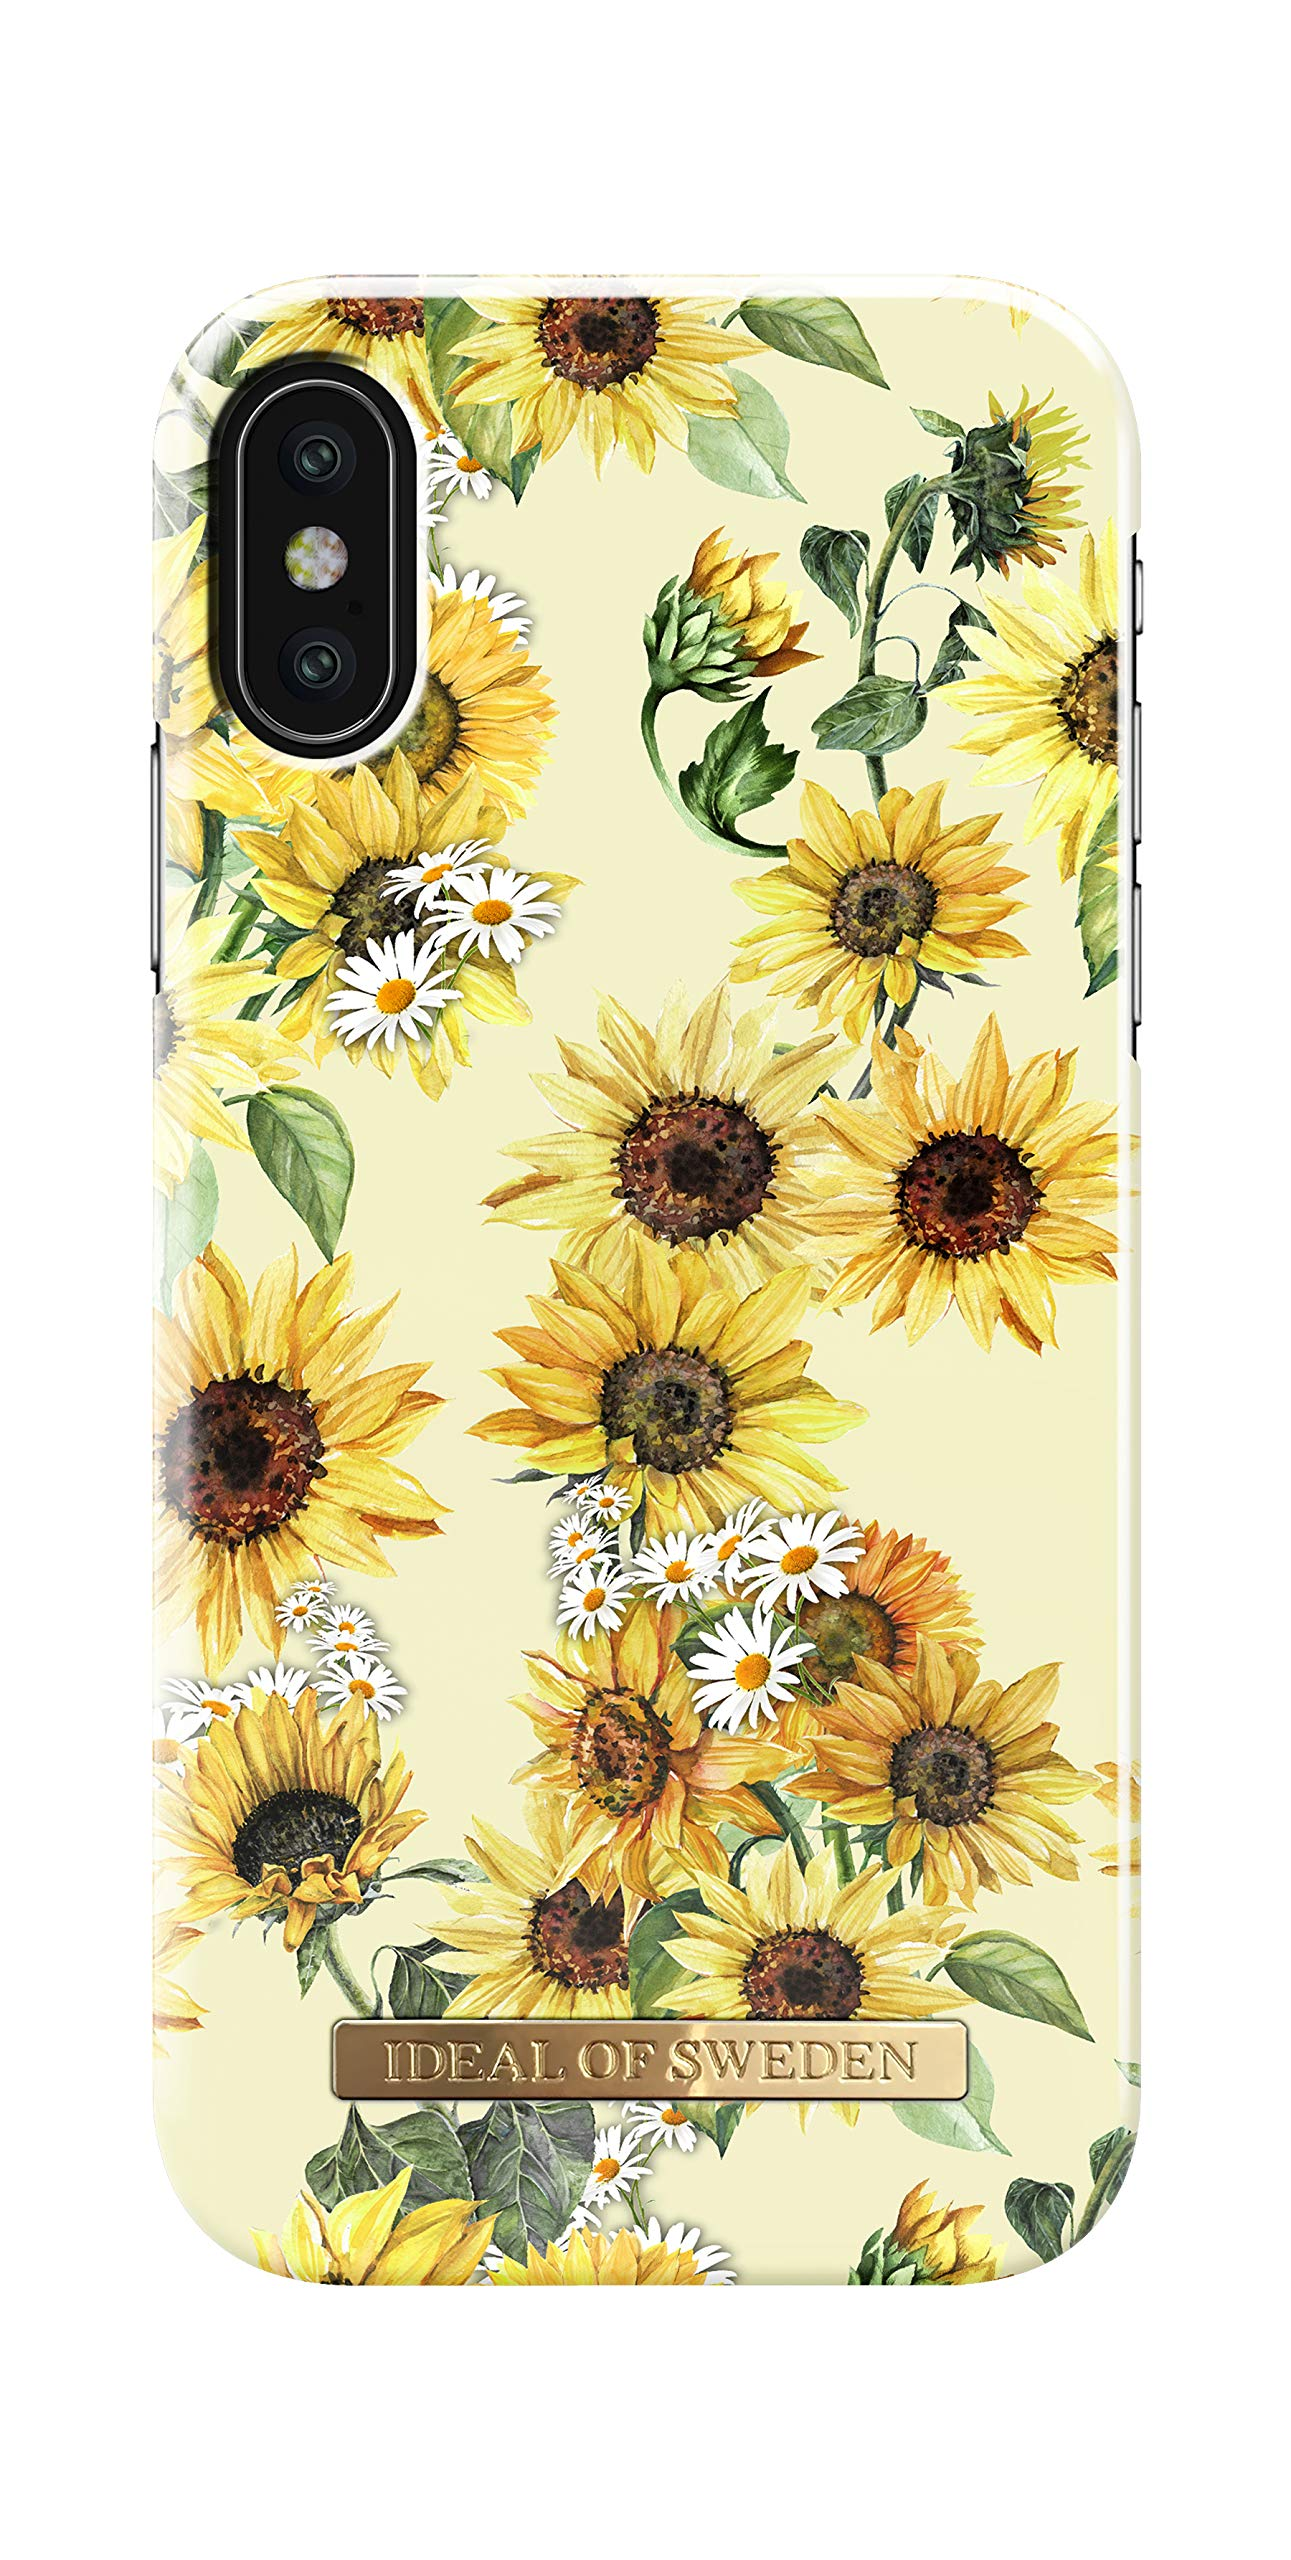 iDeal Of Sweden Mobile Phone Case for iPhone X/iPhone Xs (Microfiber Lining, Qi Wireless Charger Compatible) (Sunflower Lemonade)